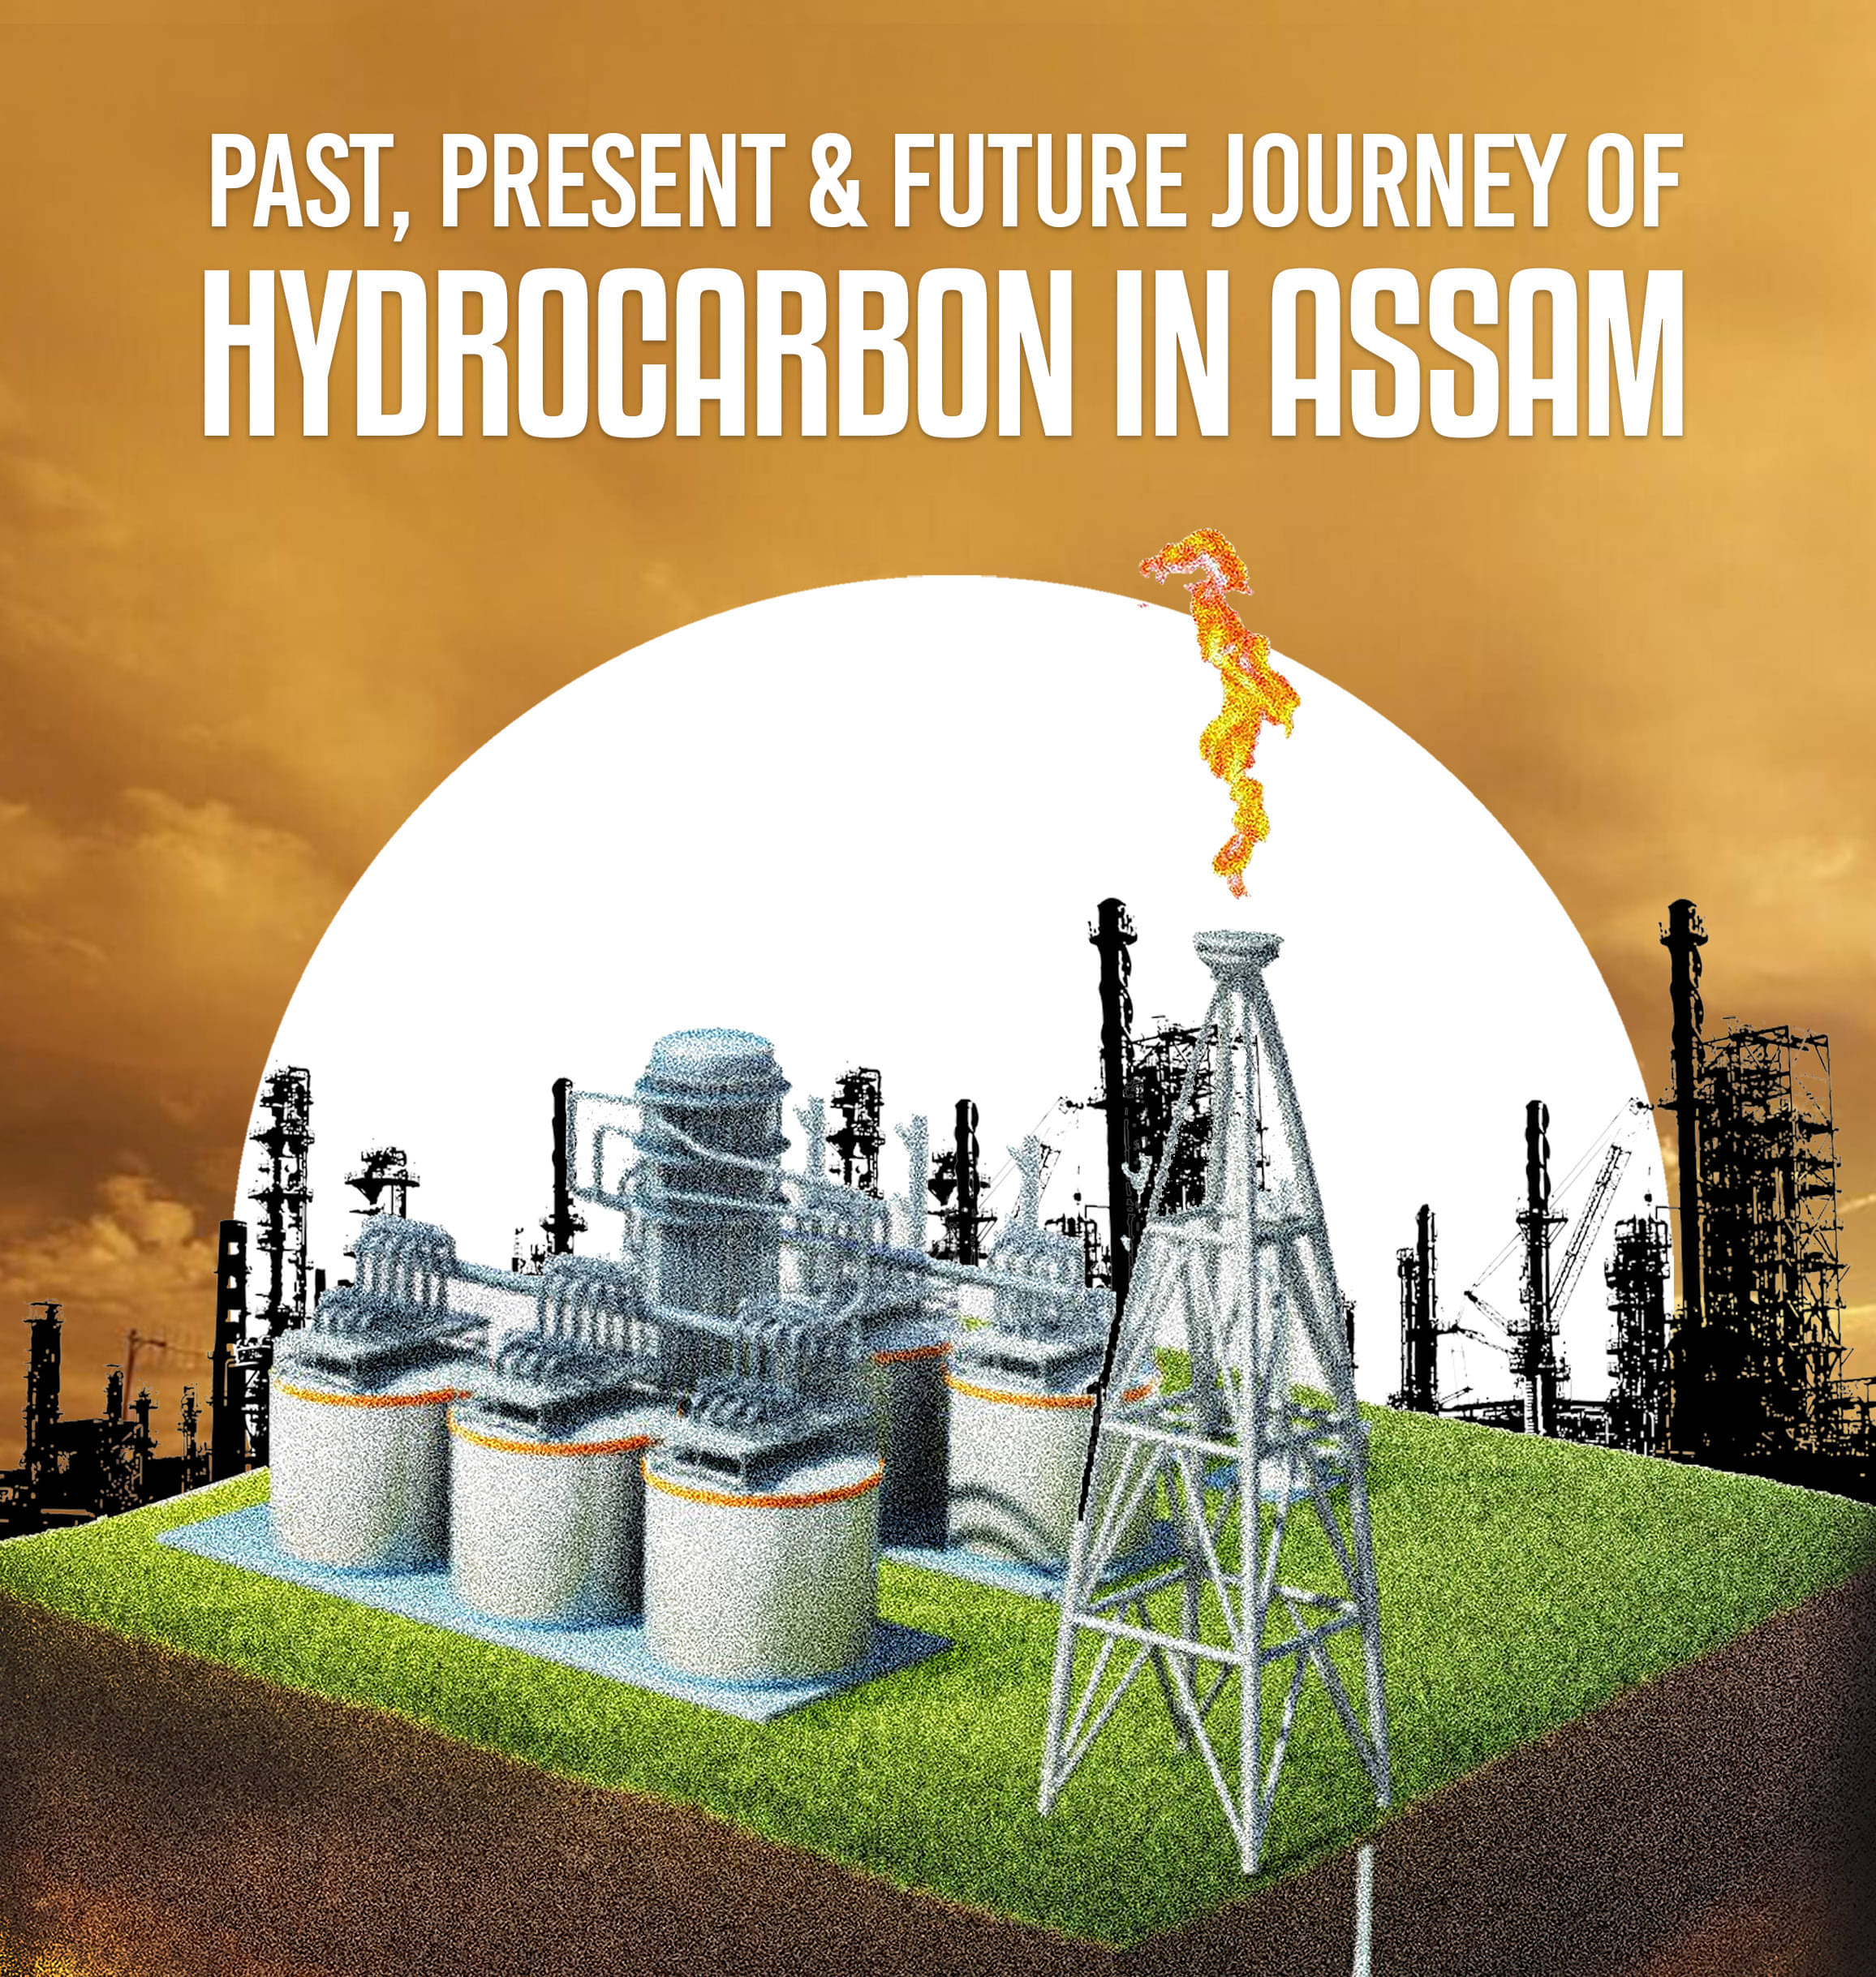 PAST,PRESENT & FUTURE JOURNEY OF HYDROCARBON IN ASSAM